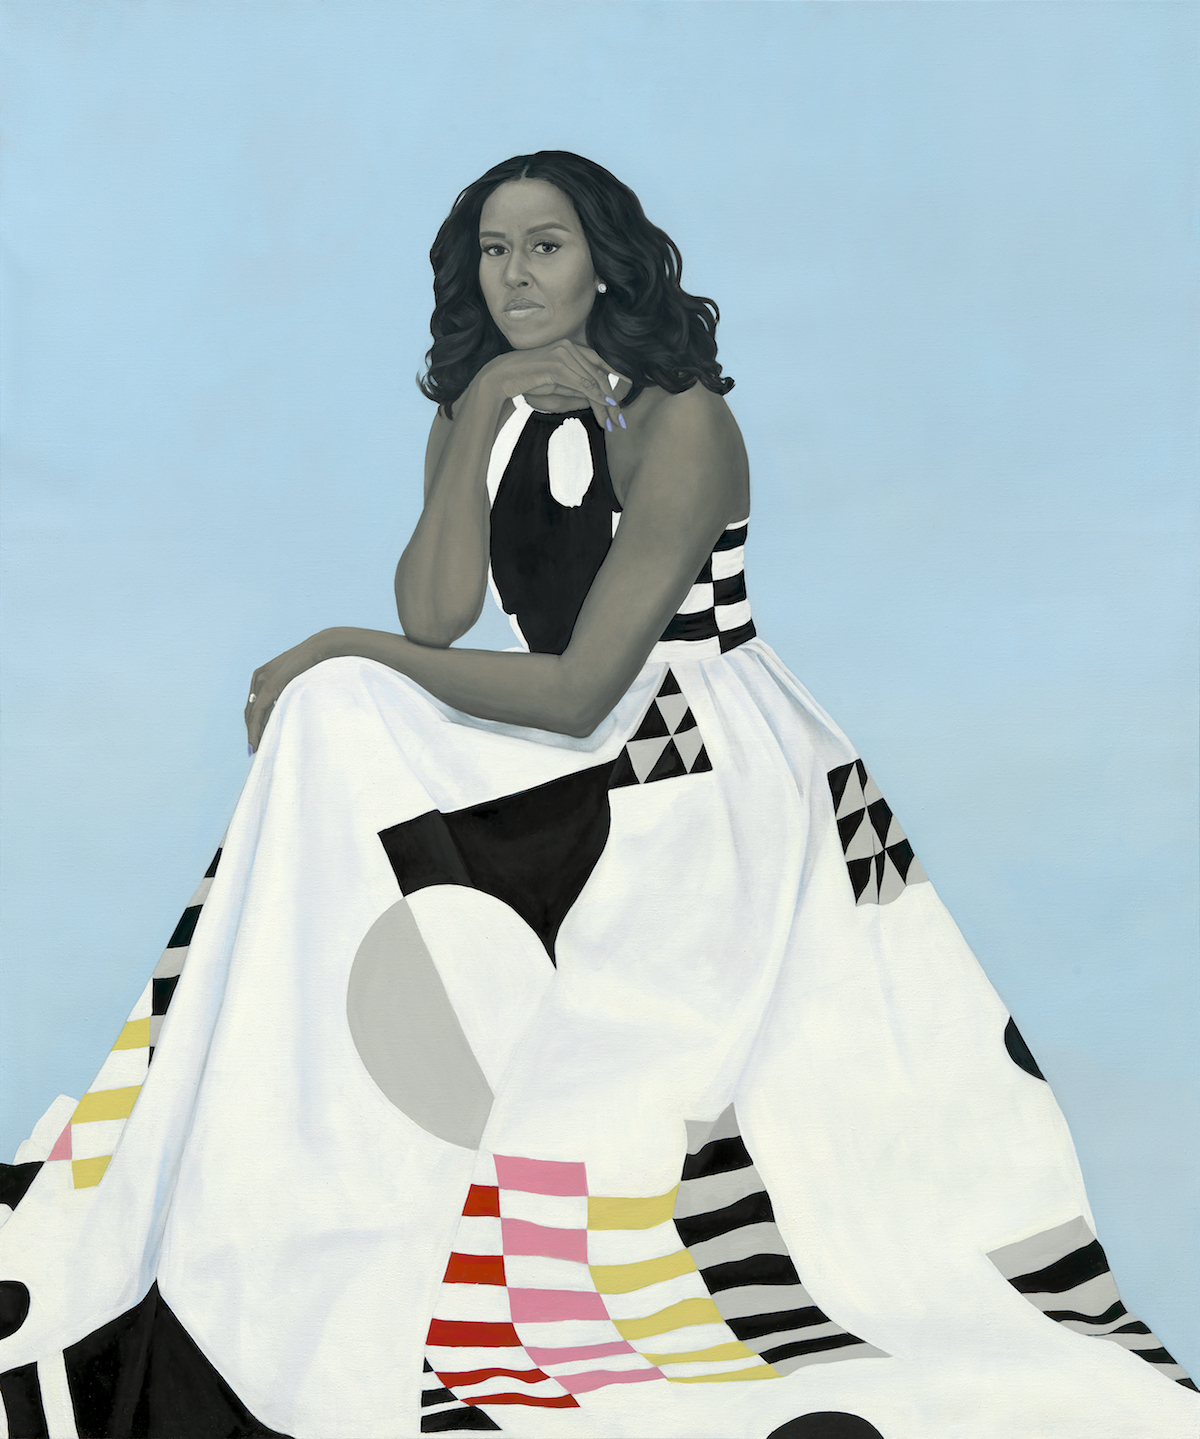 Michelle LaVaughn Robinson Obamaby Amy Sherald, oil on linen, 2018. National Portrait Gallery, Smithsonian Institution. The National Portrait Gallery is grateful to the following lead donors for their support ofthe Obama portraits: Kate Capshaw and Steven Spielberg; Judith Kern and Kent Whealy; Tommie L. Pegues and Donald A. Capoccia.